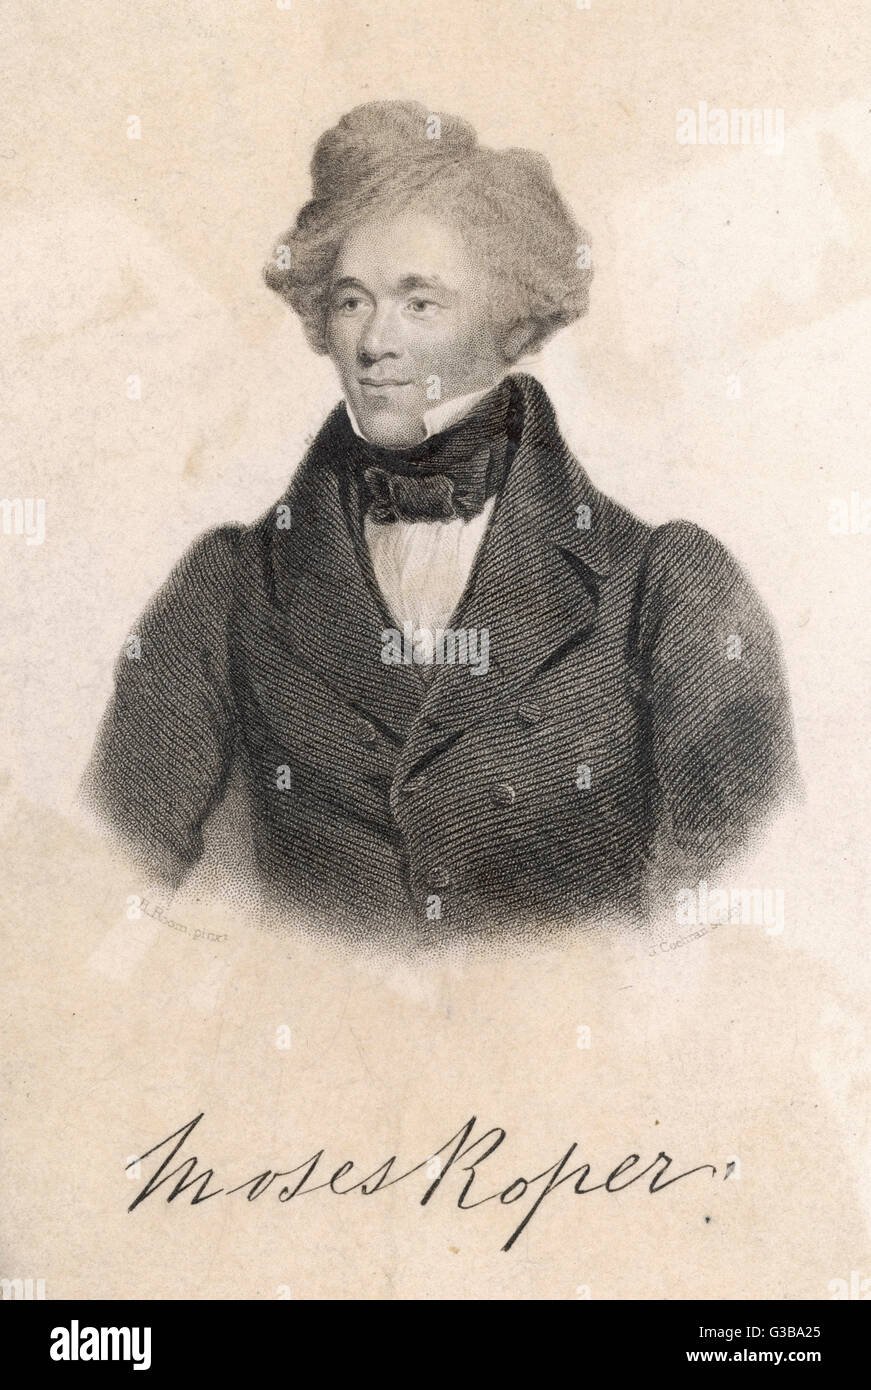 Moses Roper, a slave  who escaped and wrote his autobiography       Date: 1843 - Stock Image